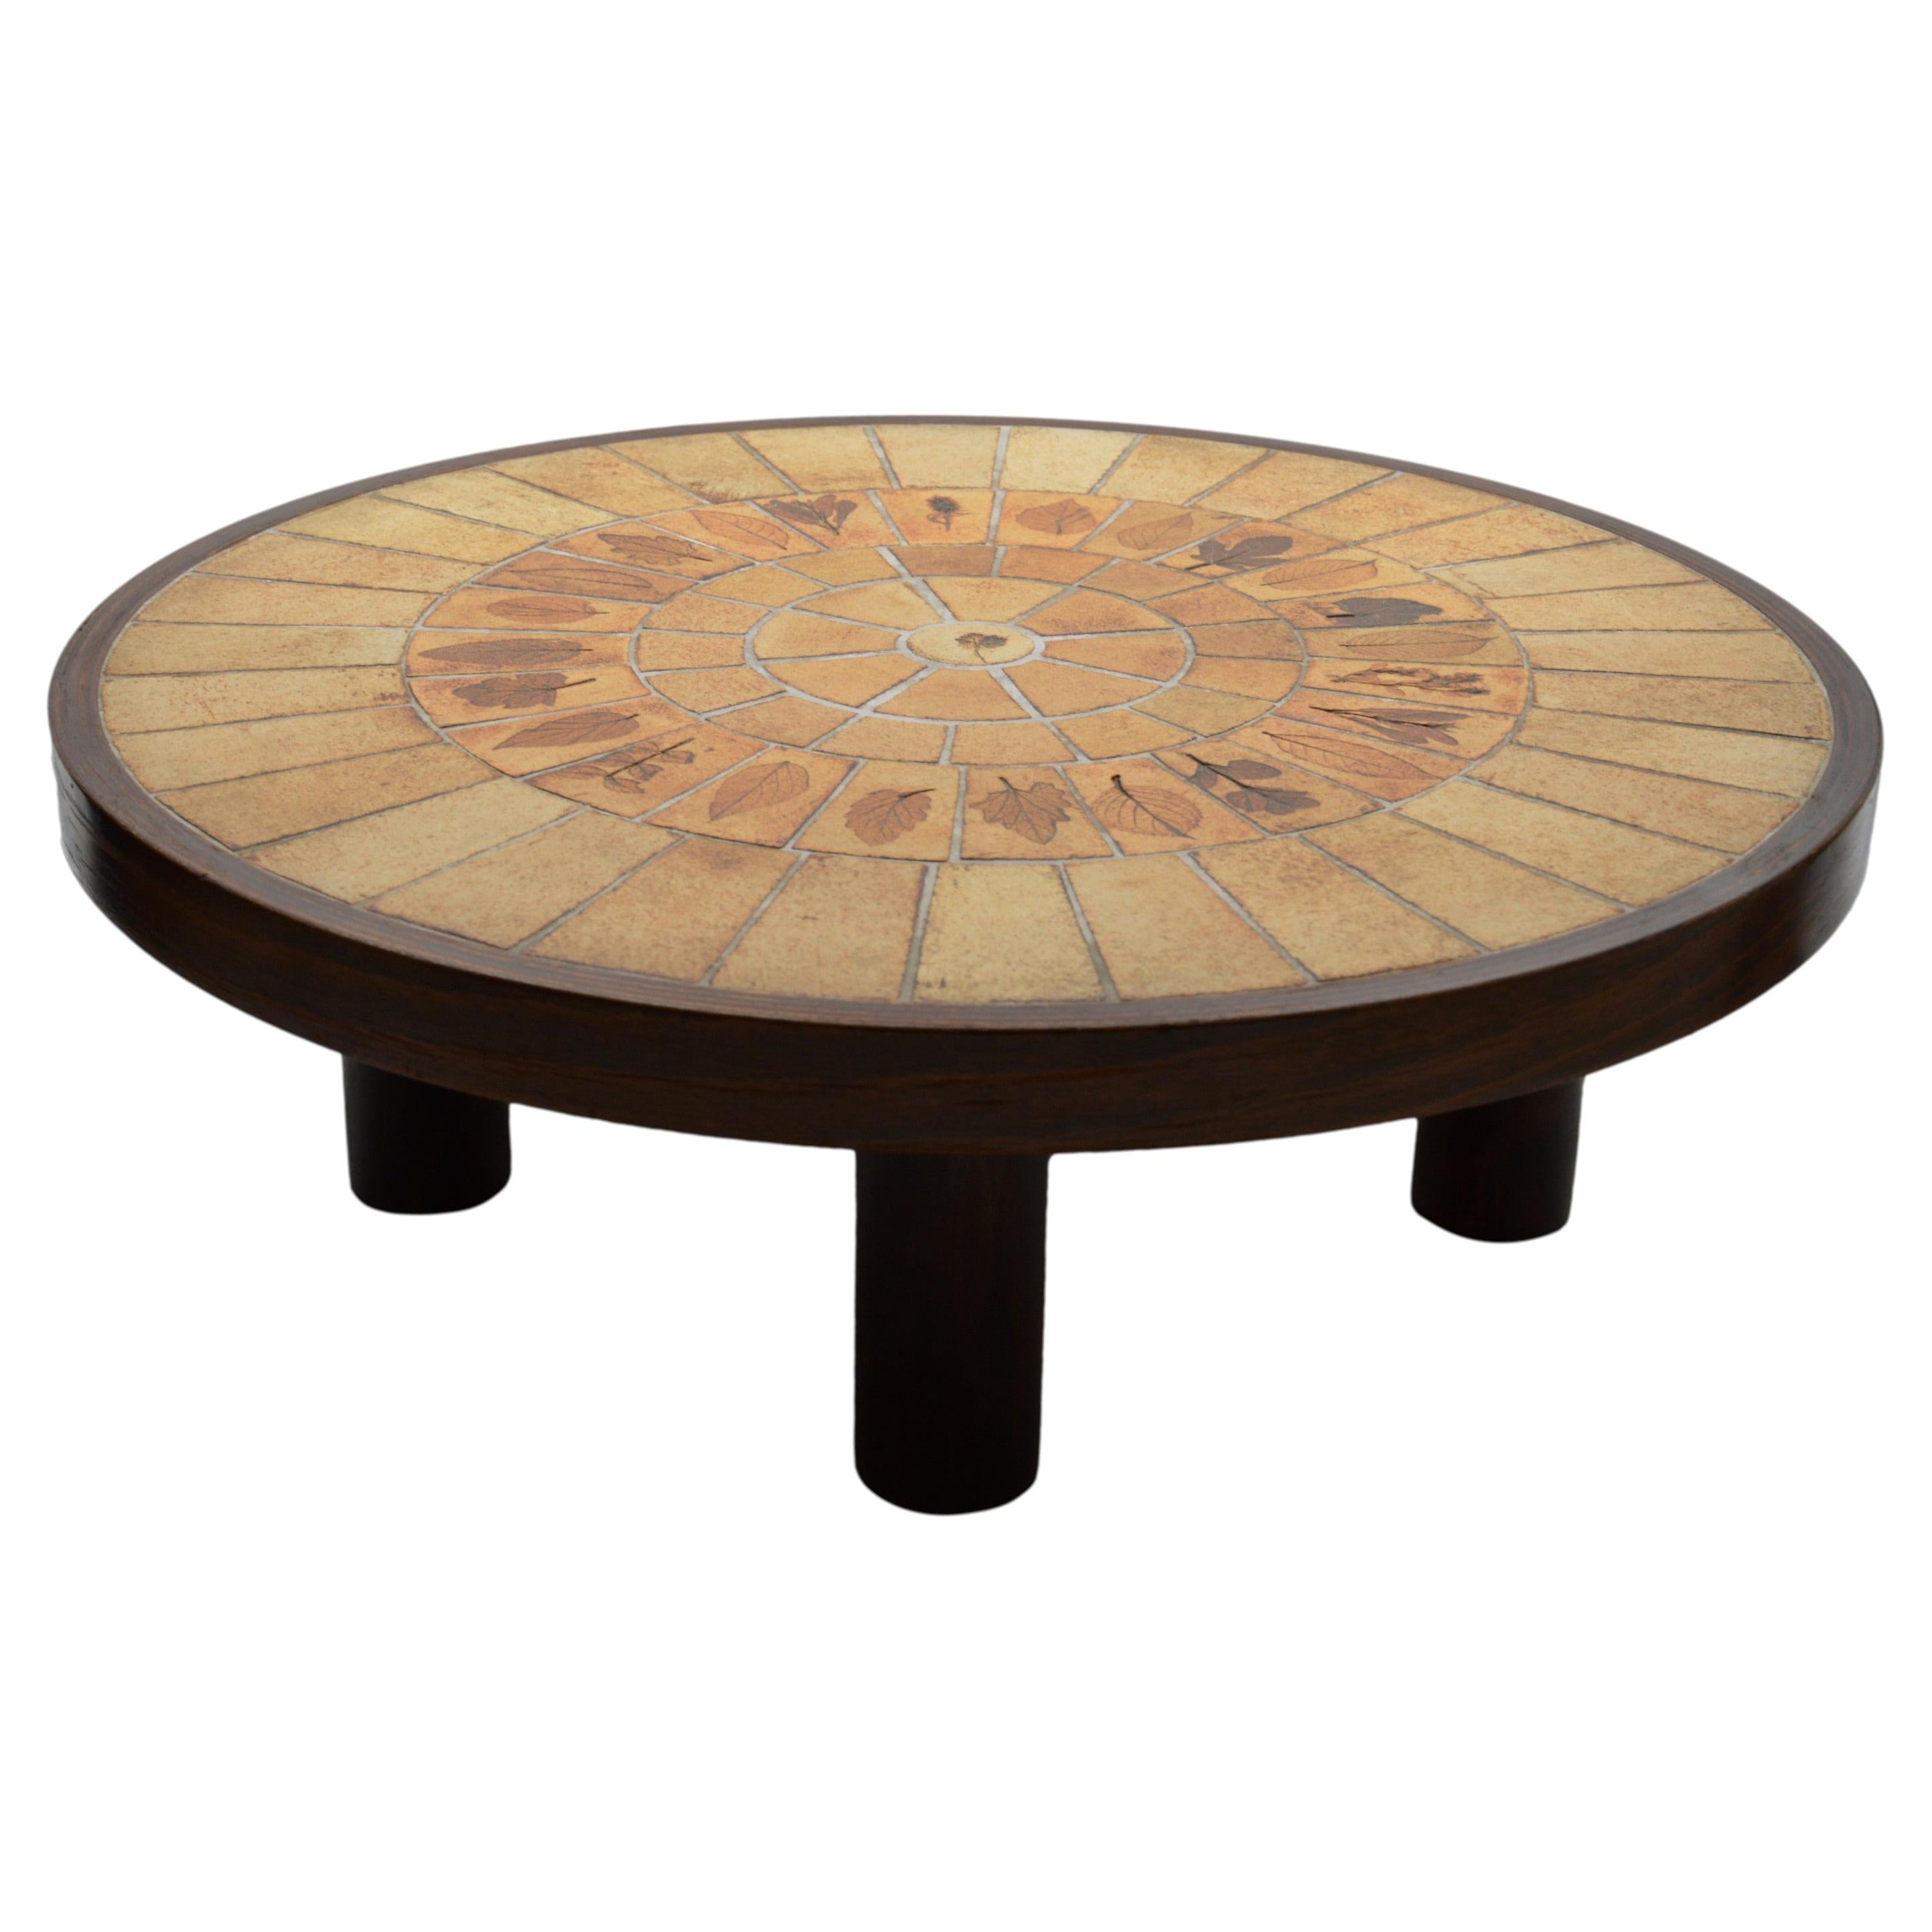 Roger Capron Small Table, 1960s